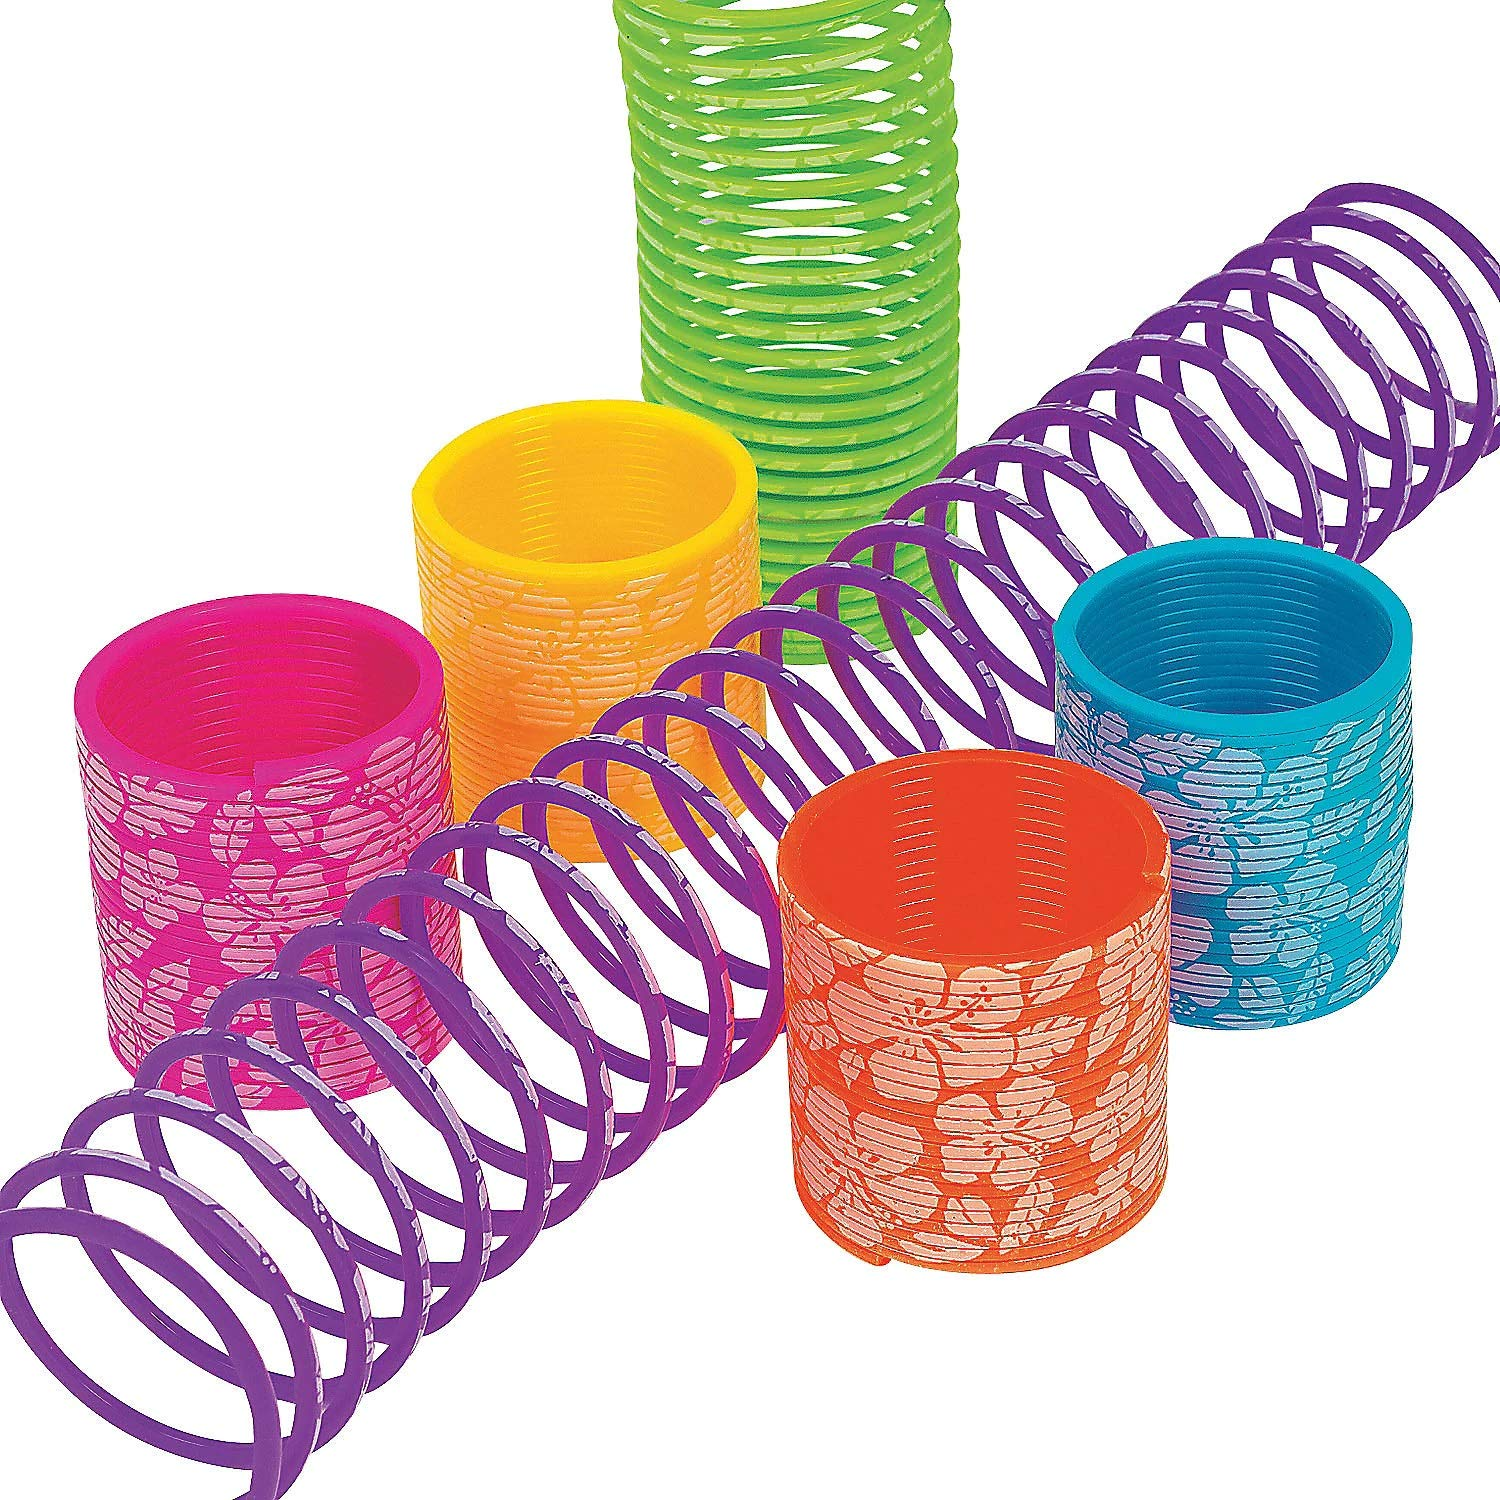 PARADISE PARTY MAGIC SPRINGS (1 DOZEN) - BULK by Fun Express